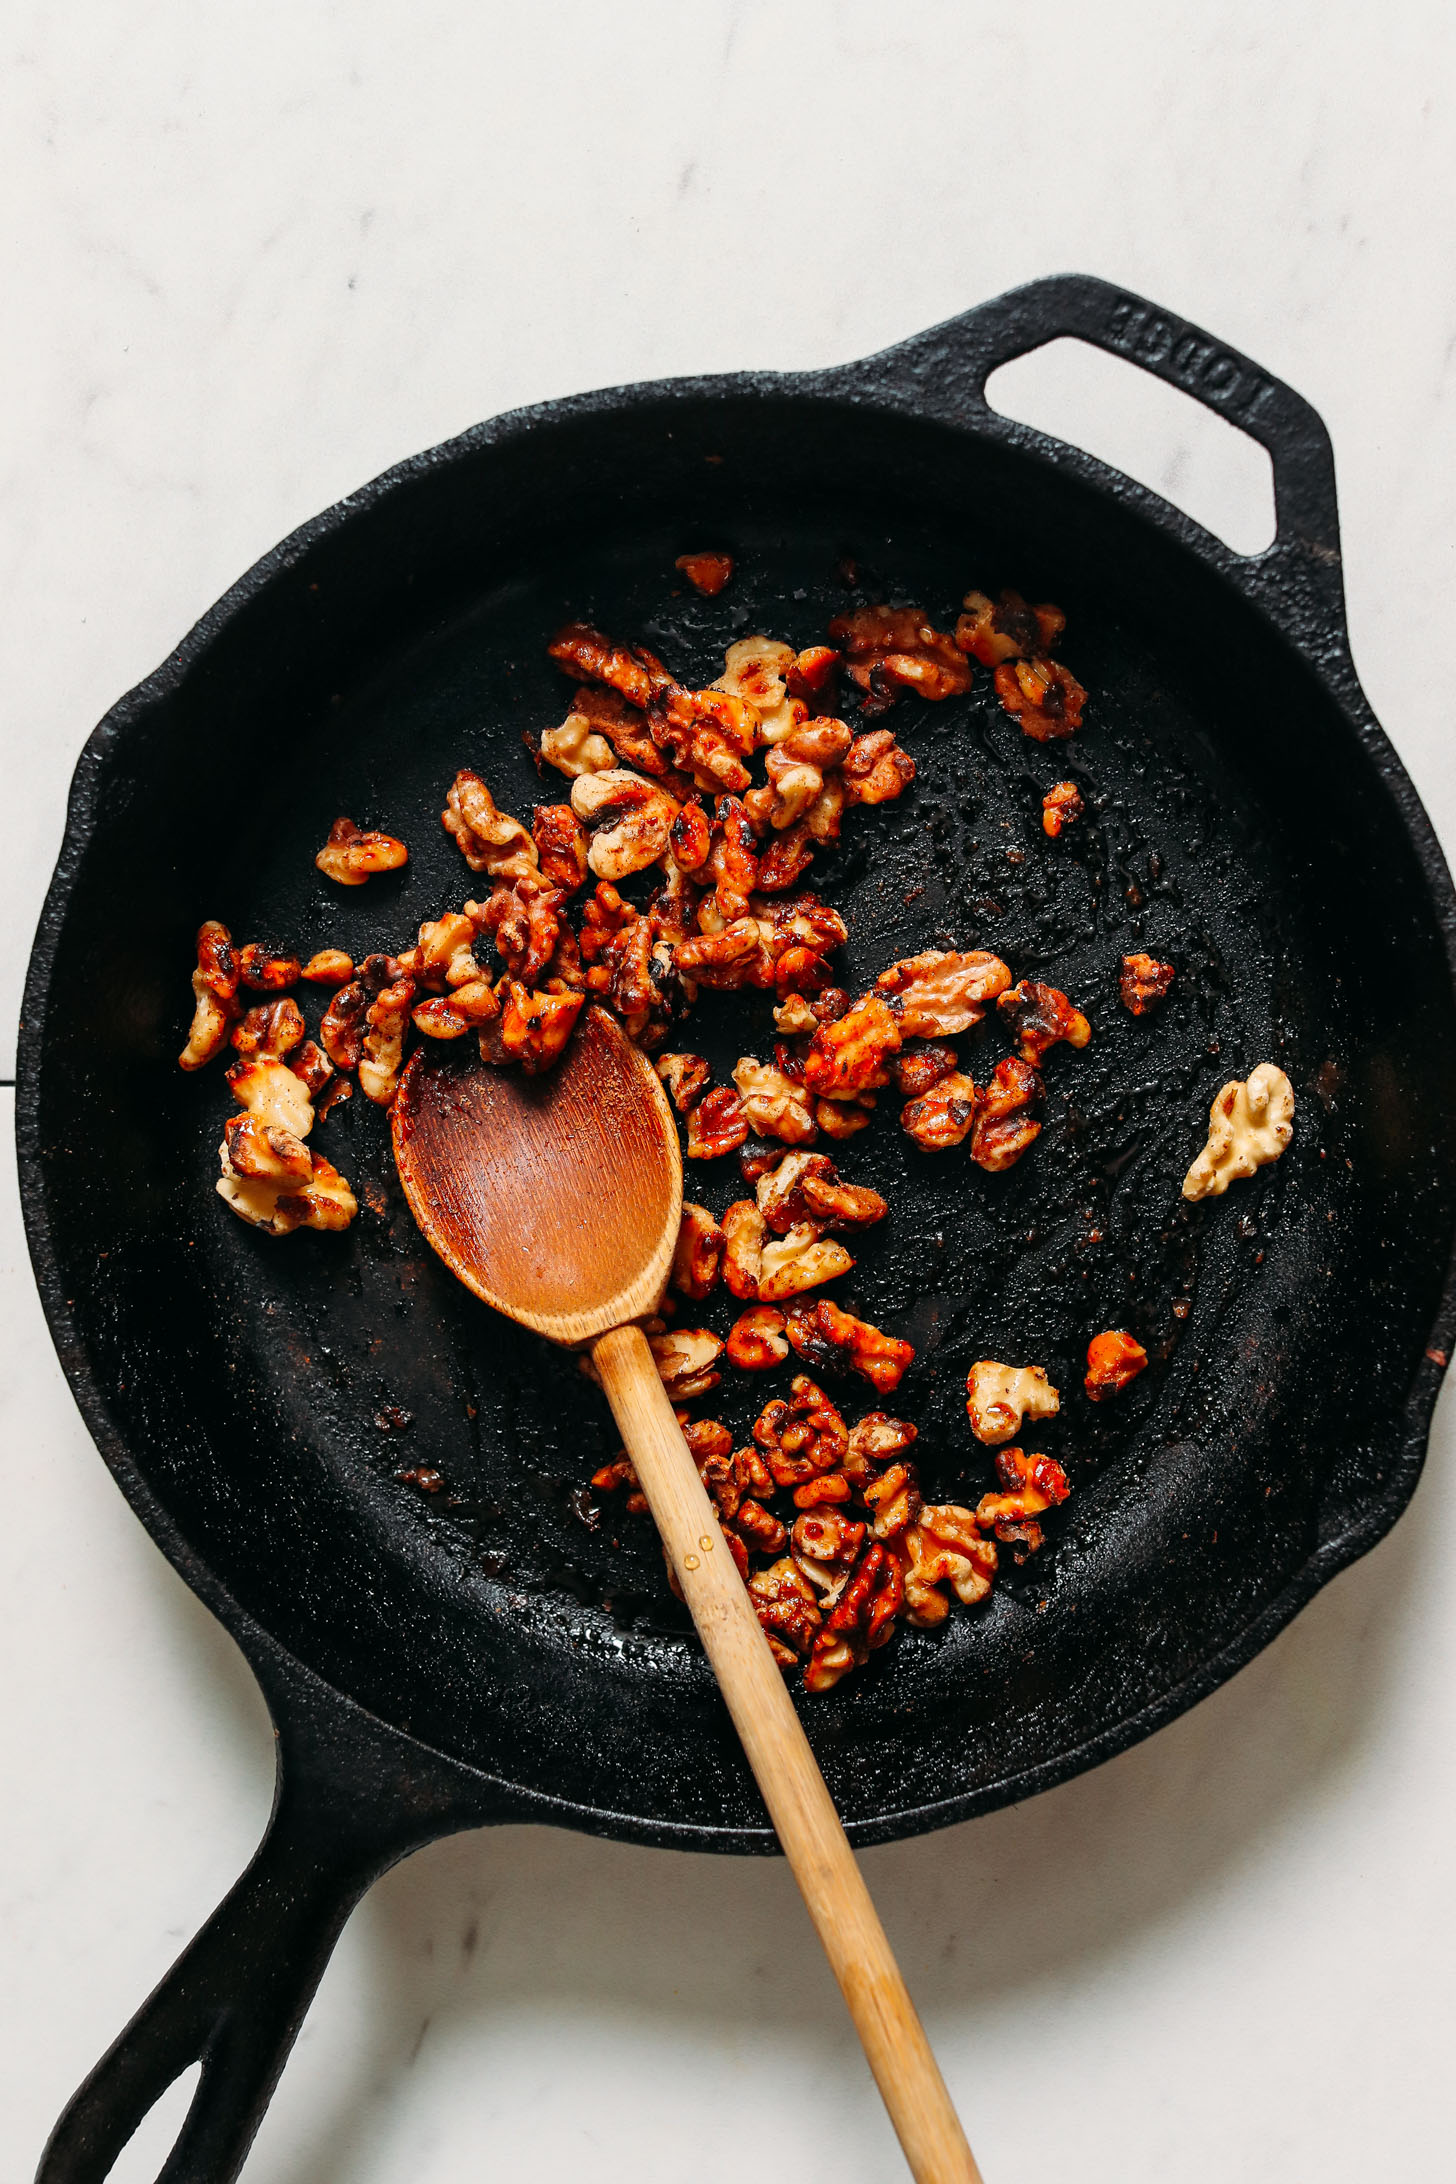 Toast the nuts in a cast iron pan